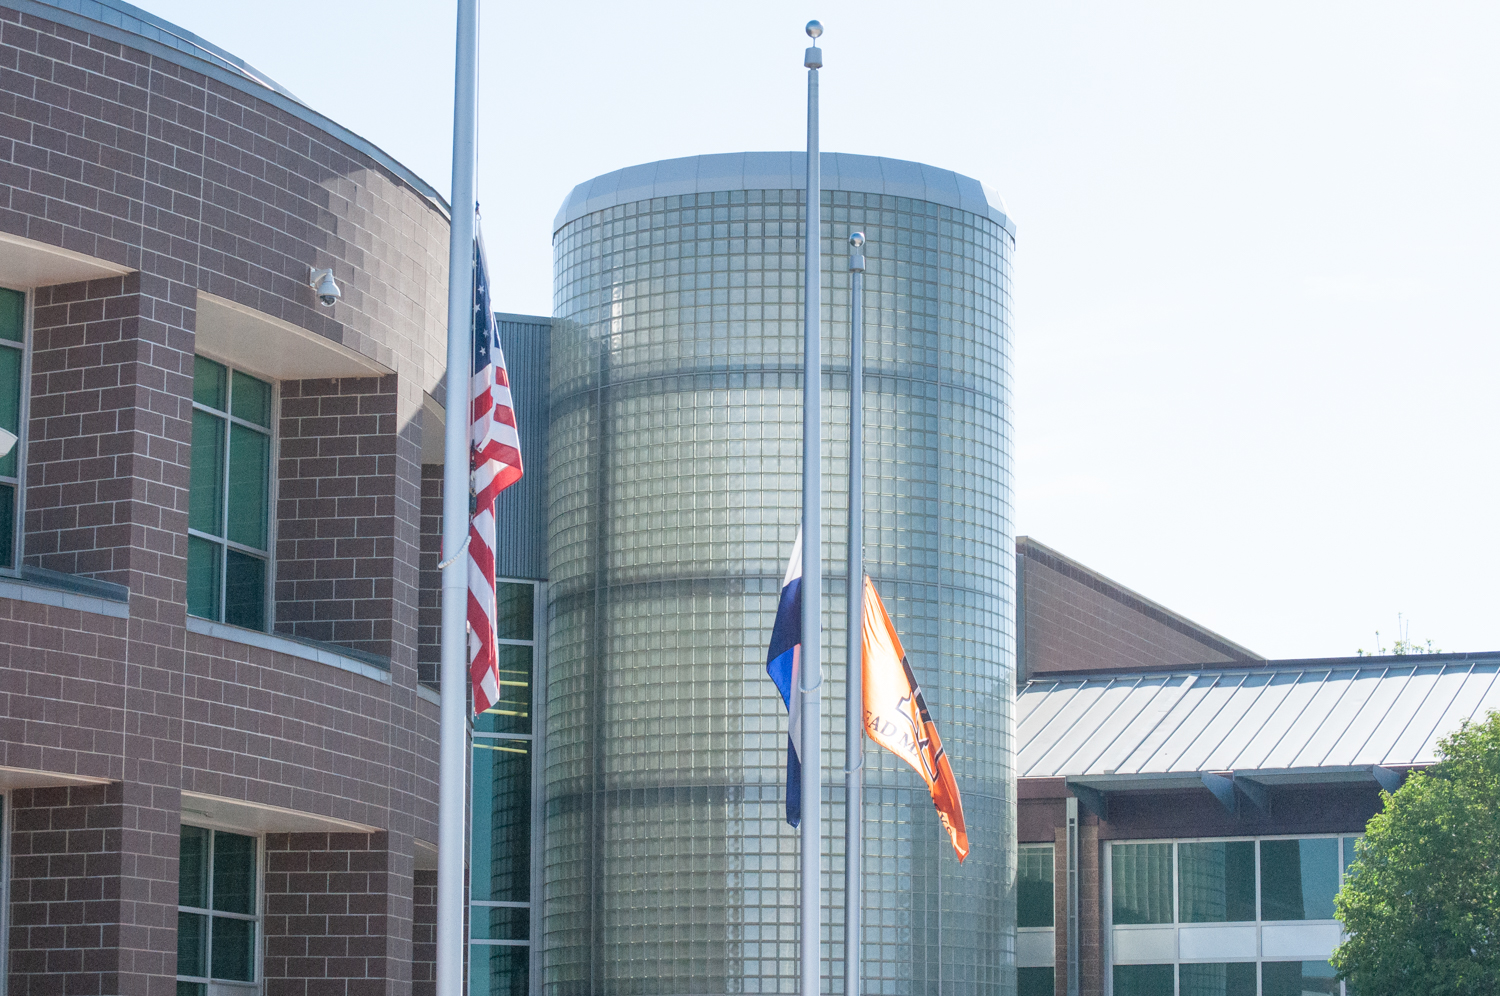 The flags at Mead High School are at half mast in honor of the recent school shooting.